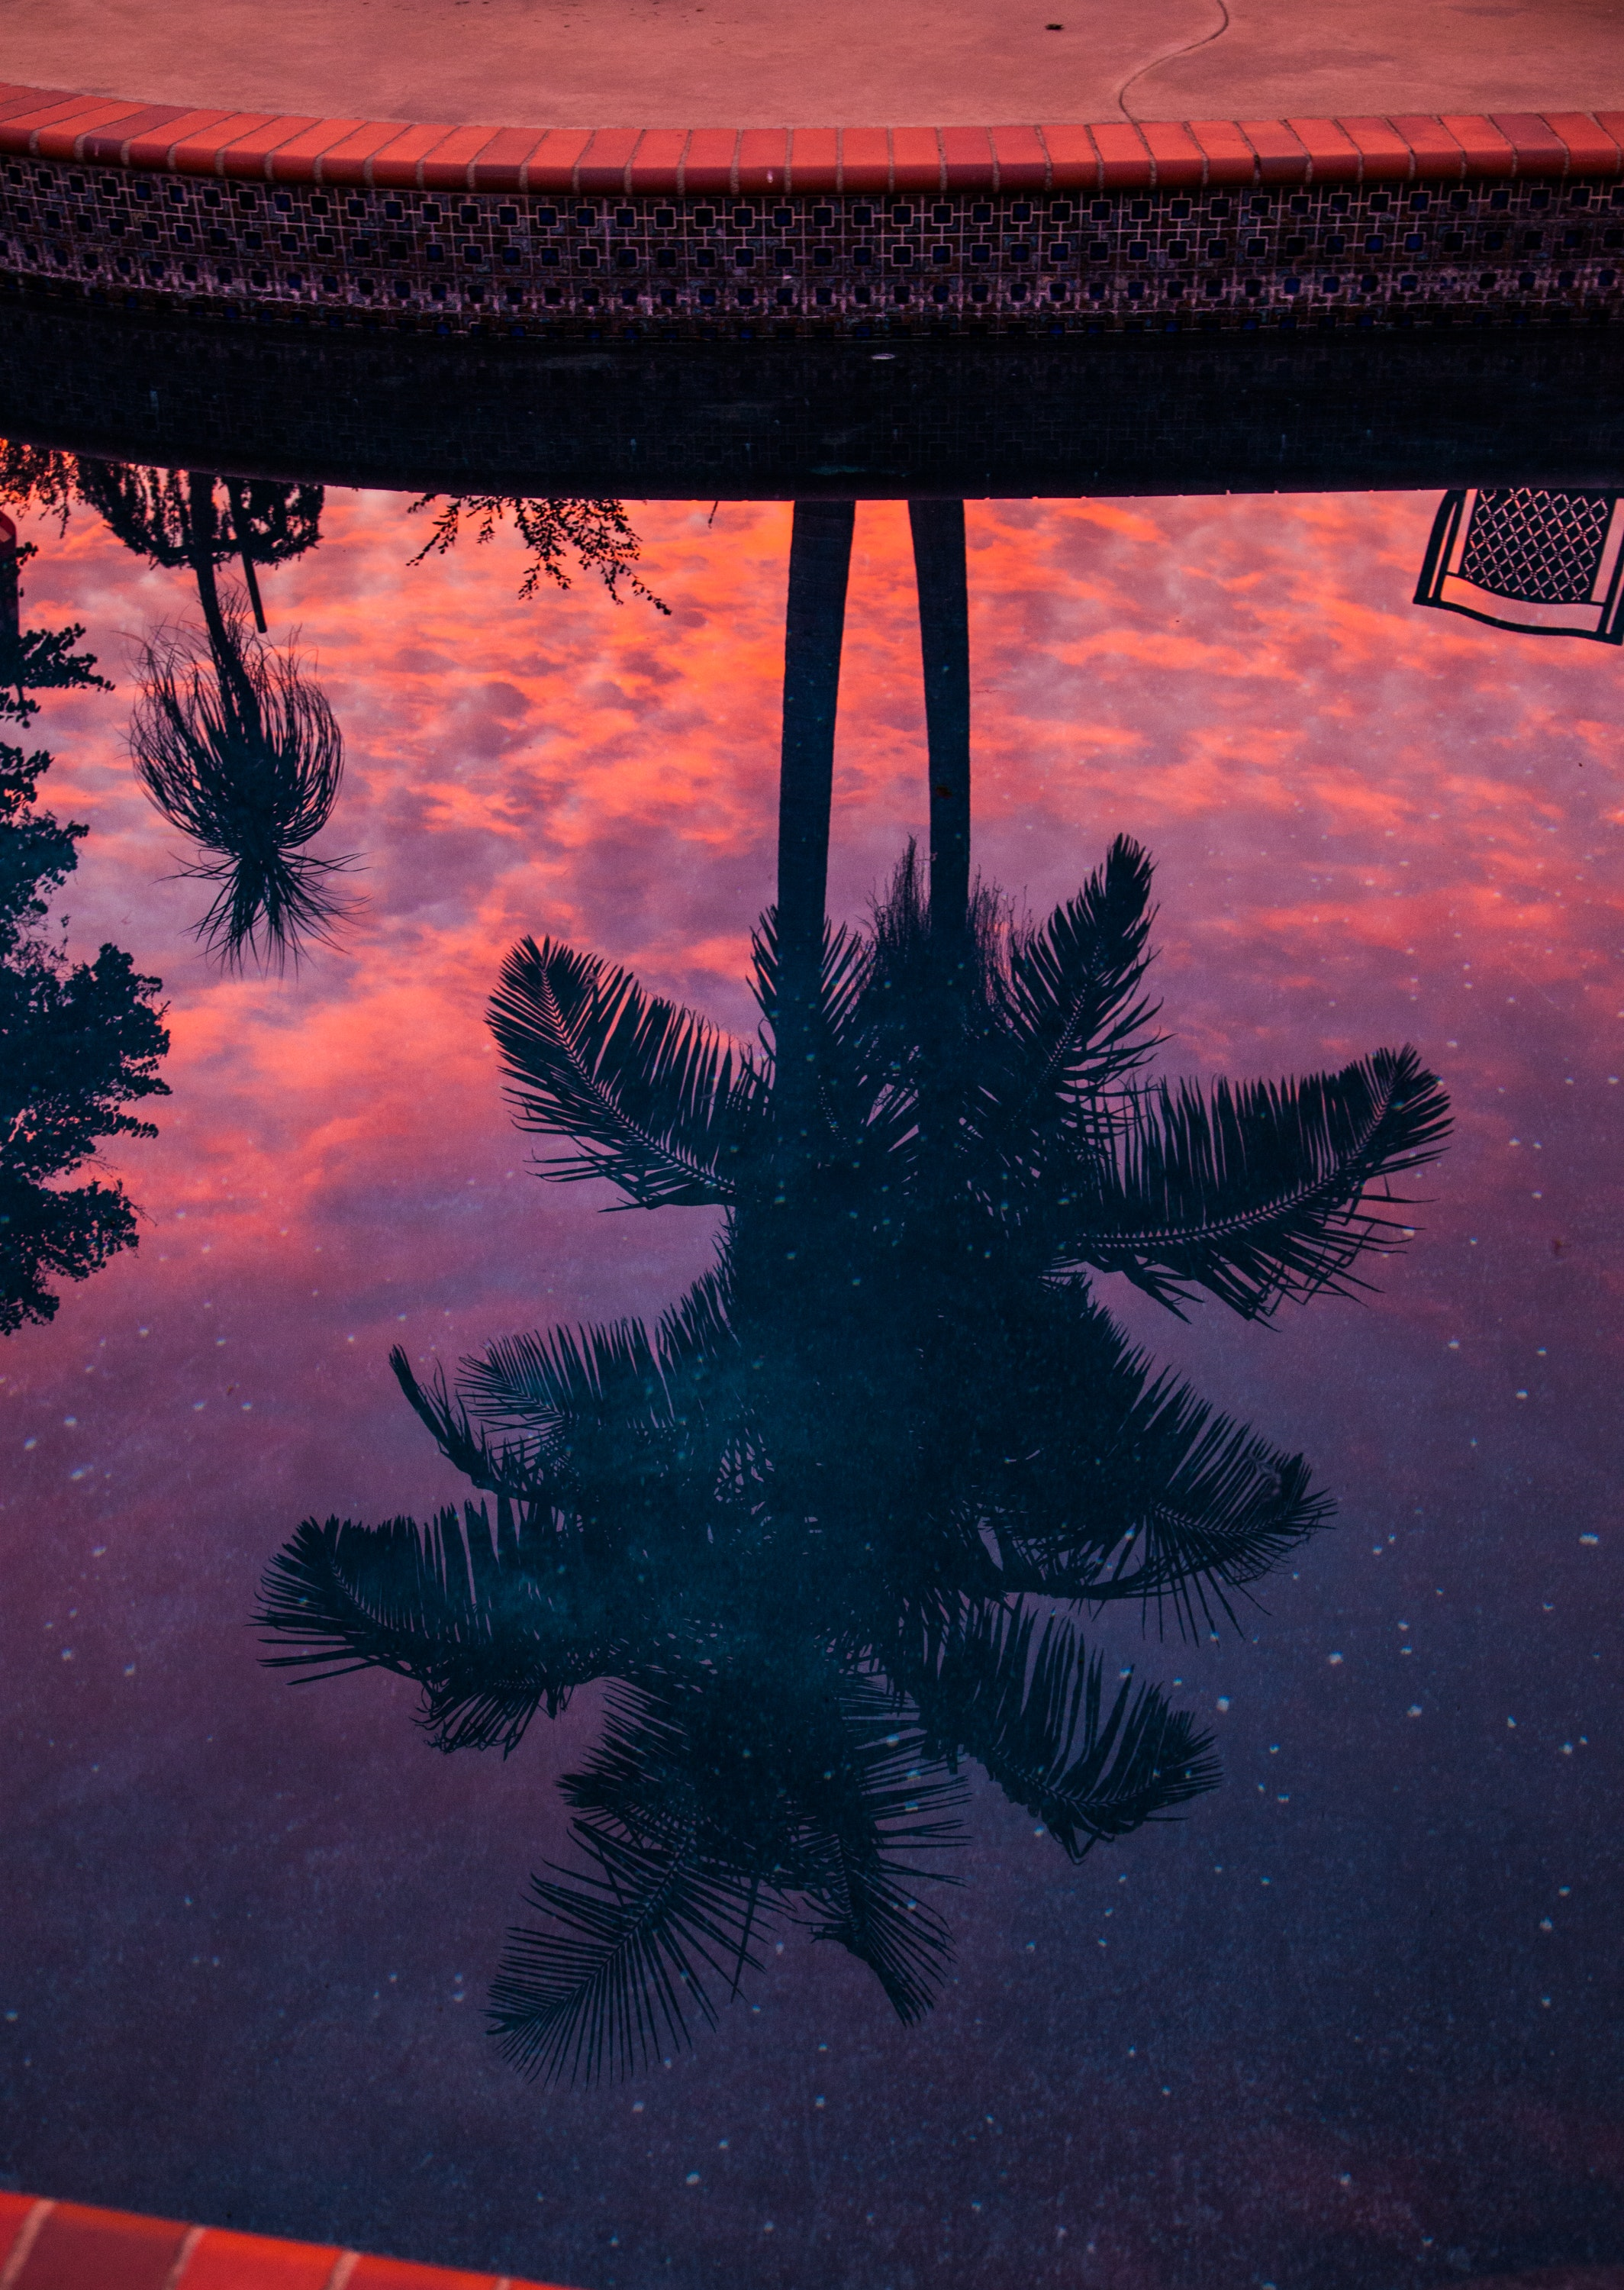 Reflection of two coconut tree on body of water photo